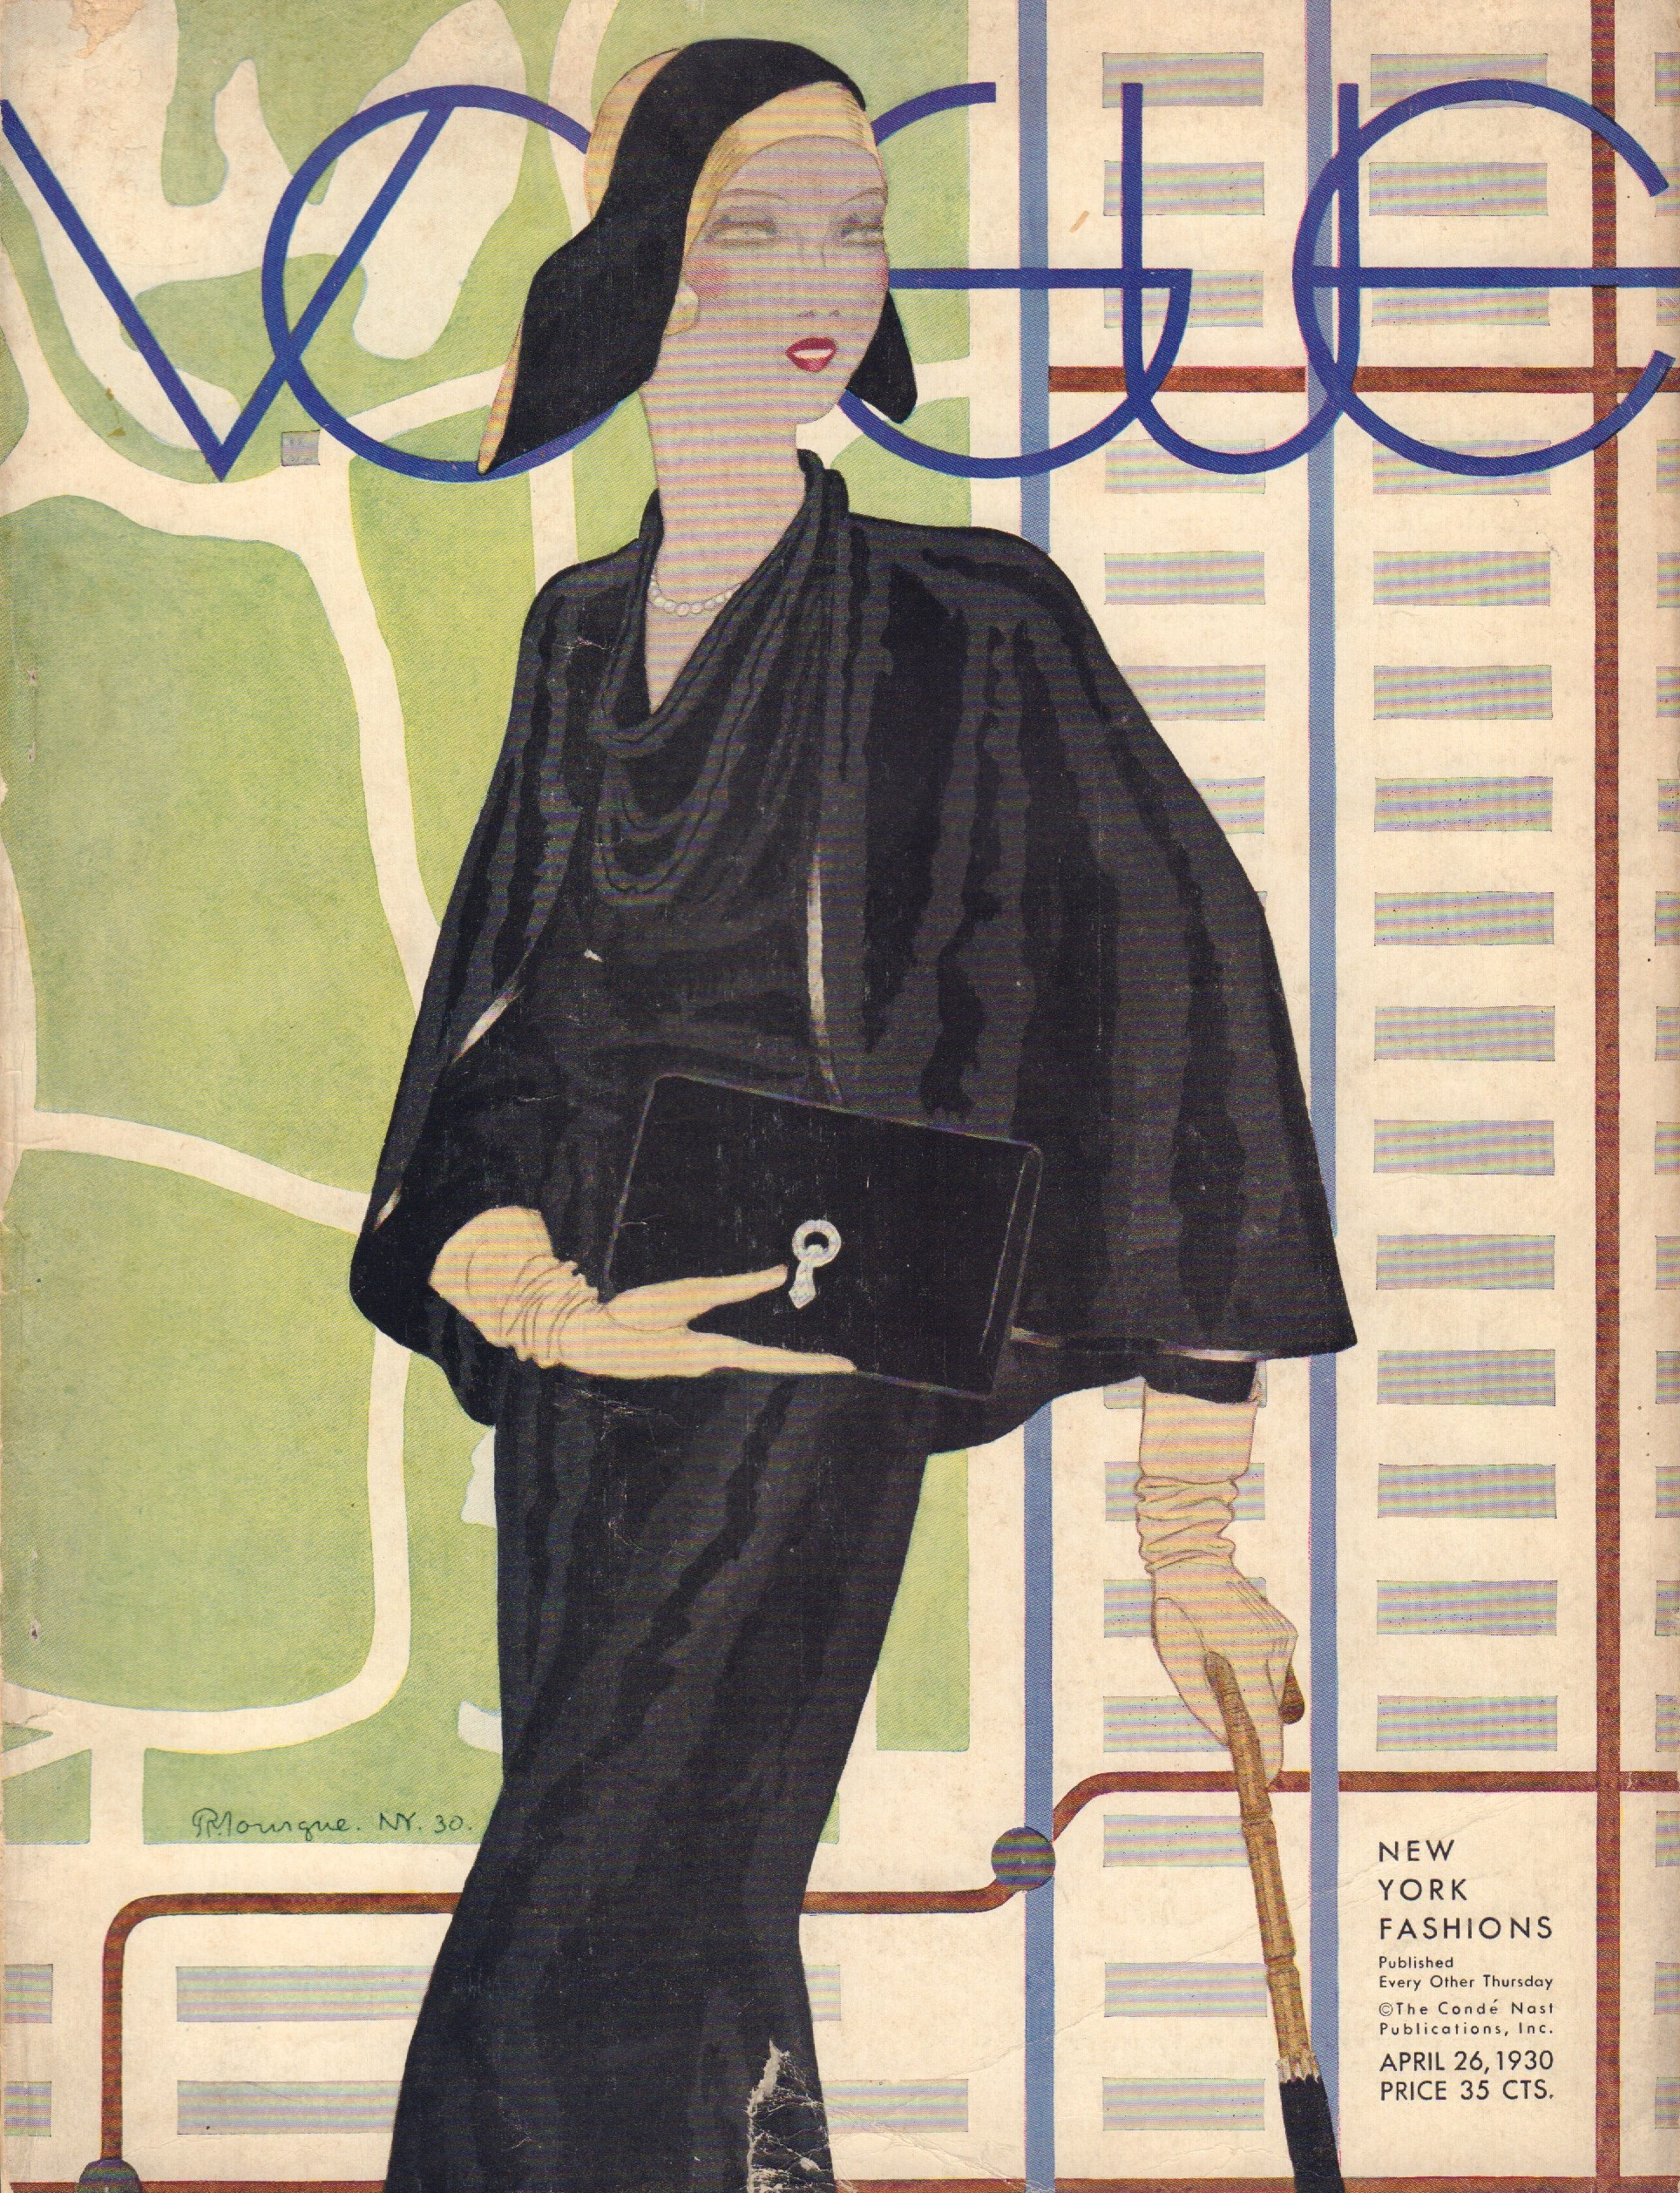 Image for Vogue April 26, 1930